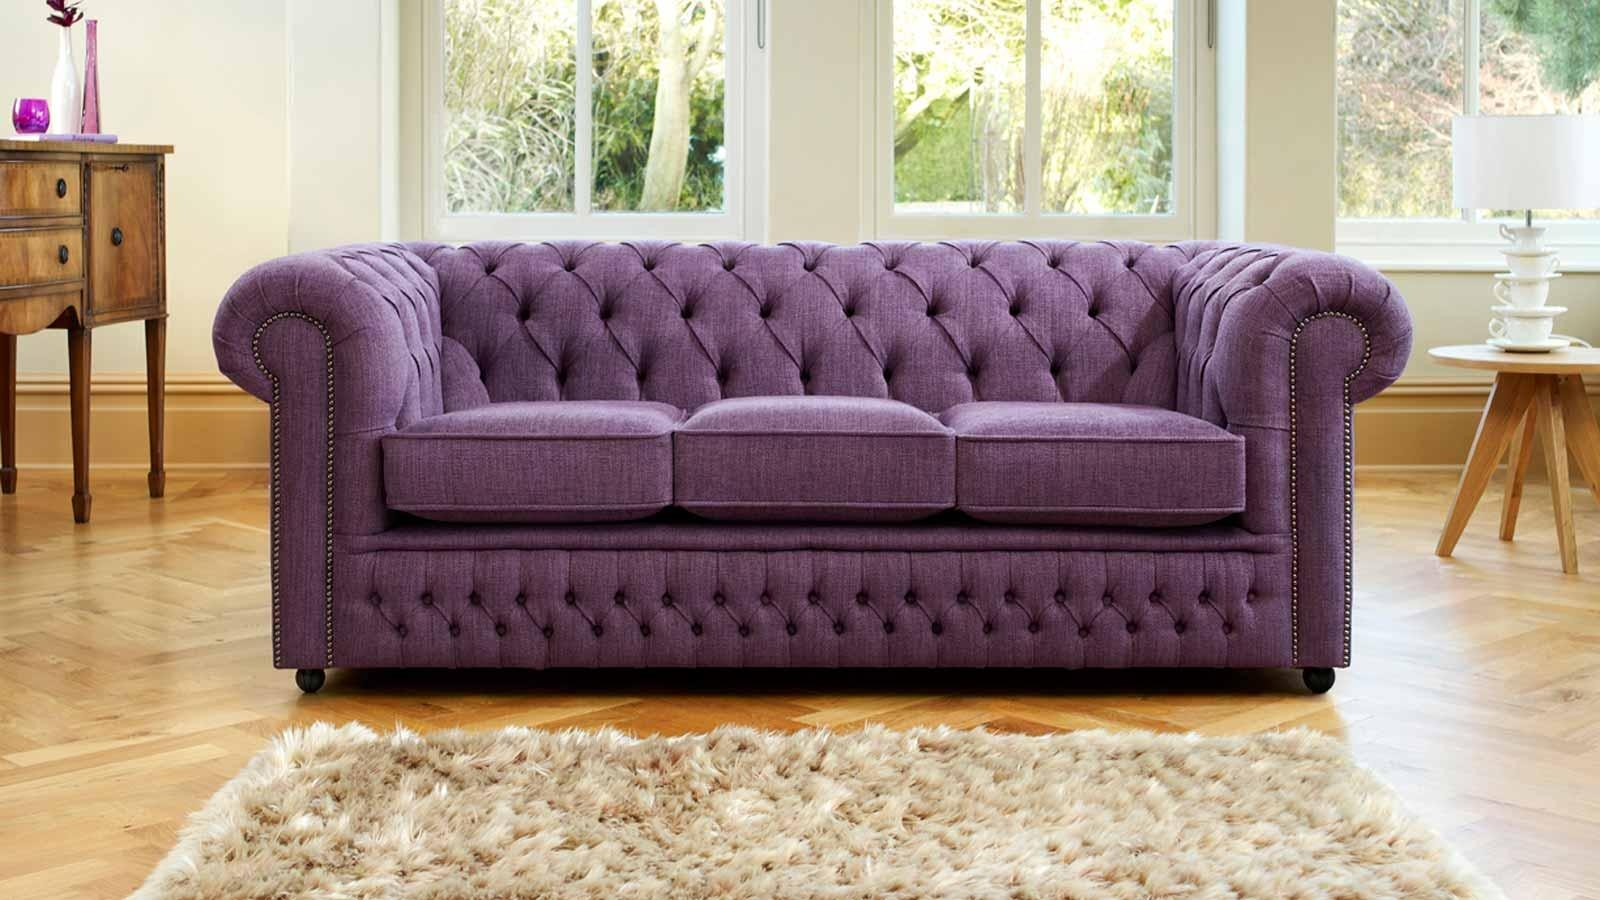 Featured Image of Purple Chesterfield Sofas